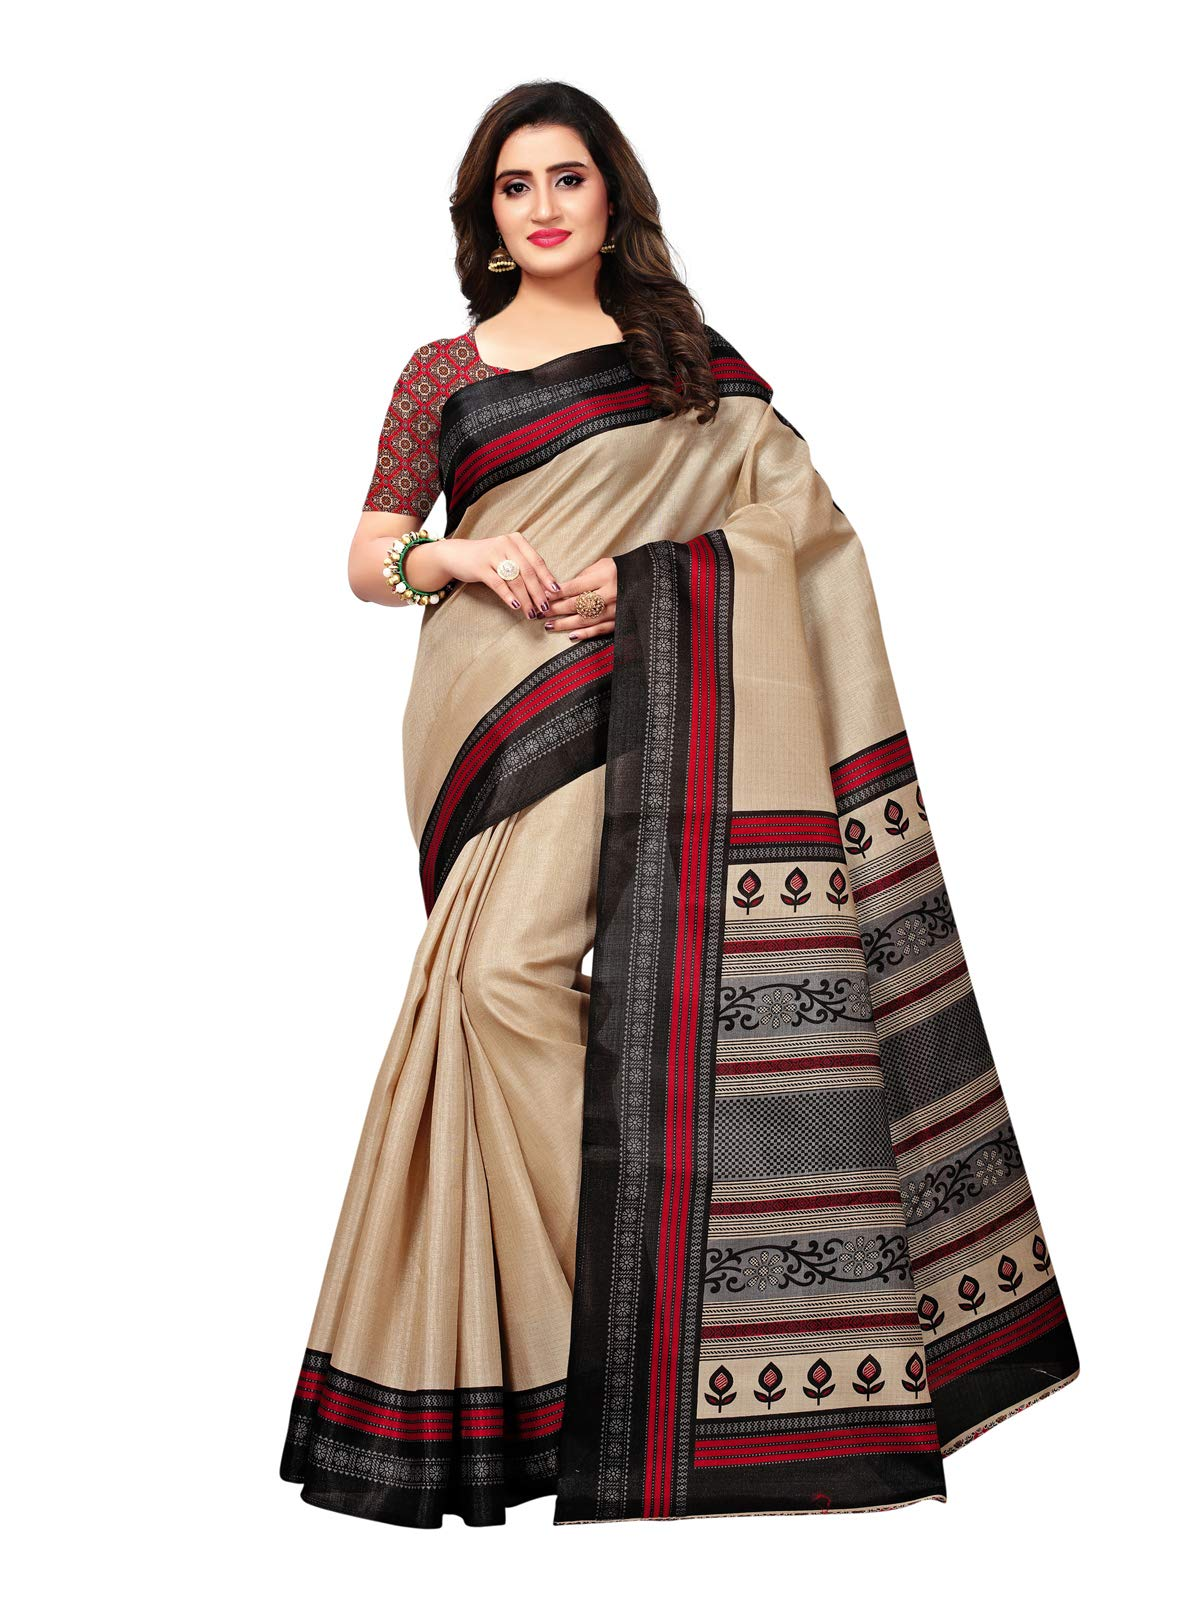 Kanchnar Women's Art Silk Printed Casual Wear Saree